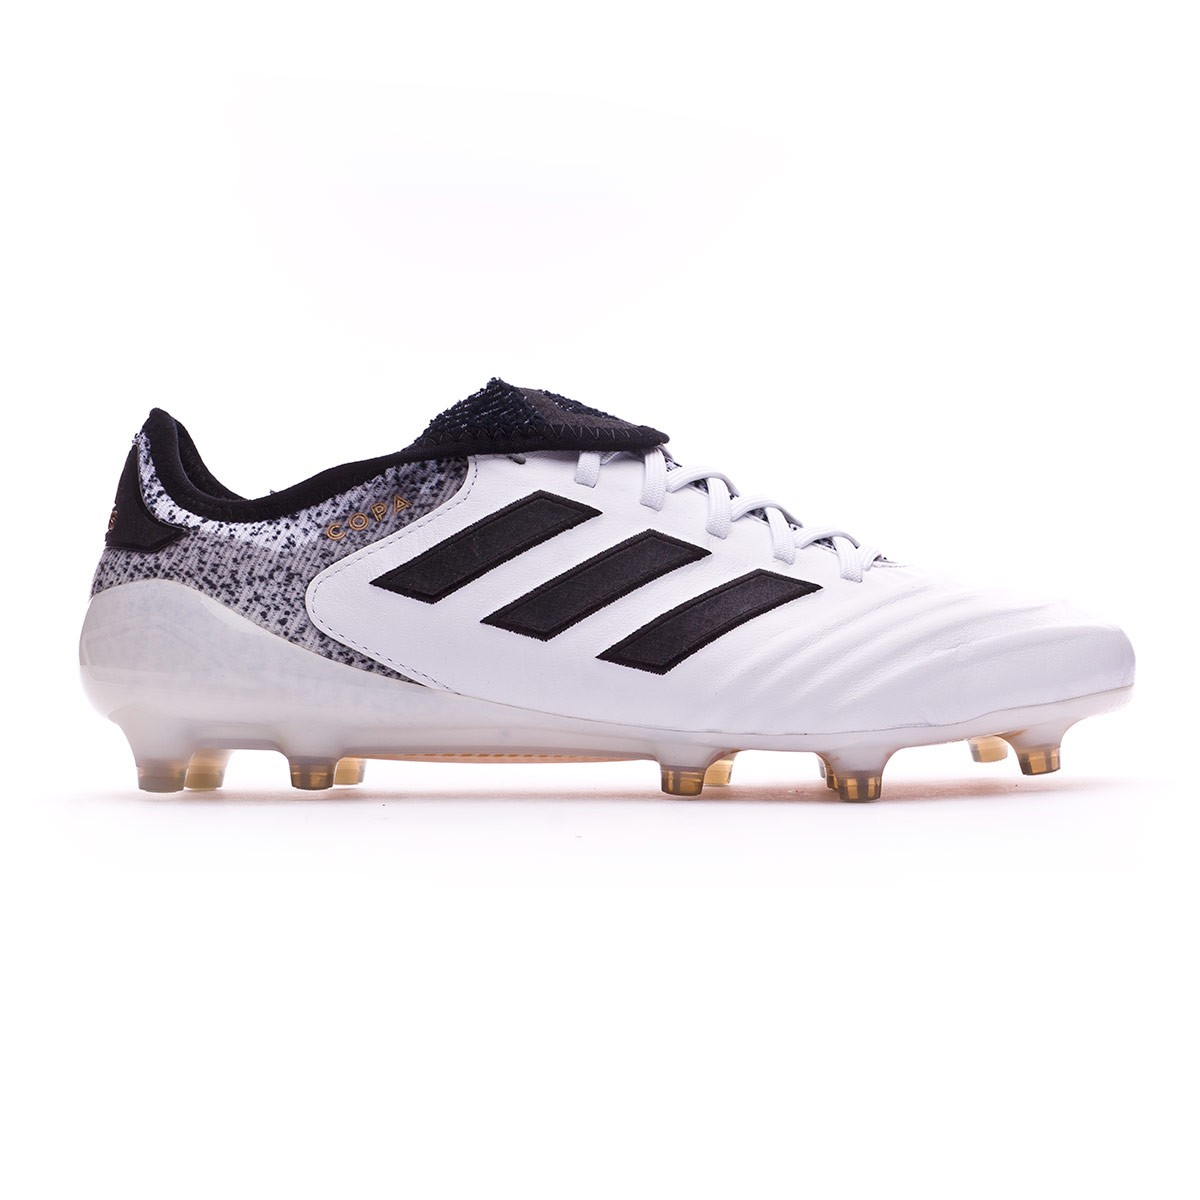 sale retailer 40566 2c3ae Football Boots adidas Copa 18.1 FG White-Core black-Tactile gold metallic -  Football store Fútbol Emotion